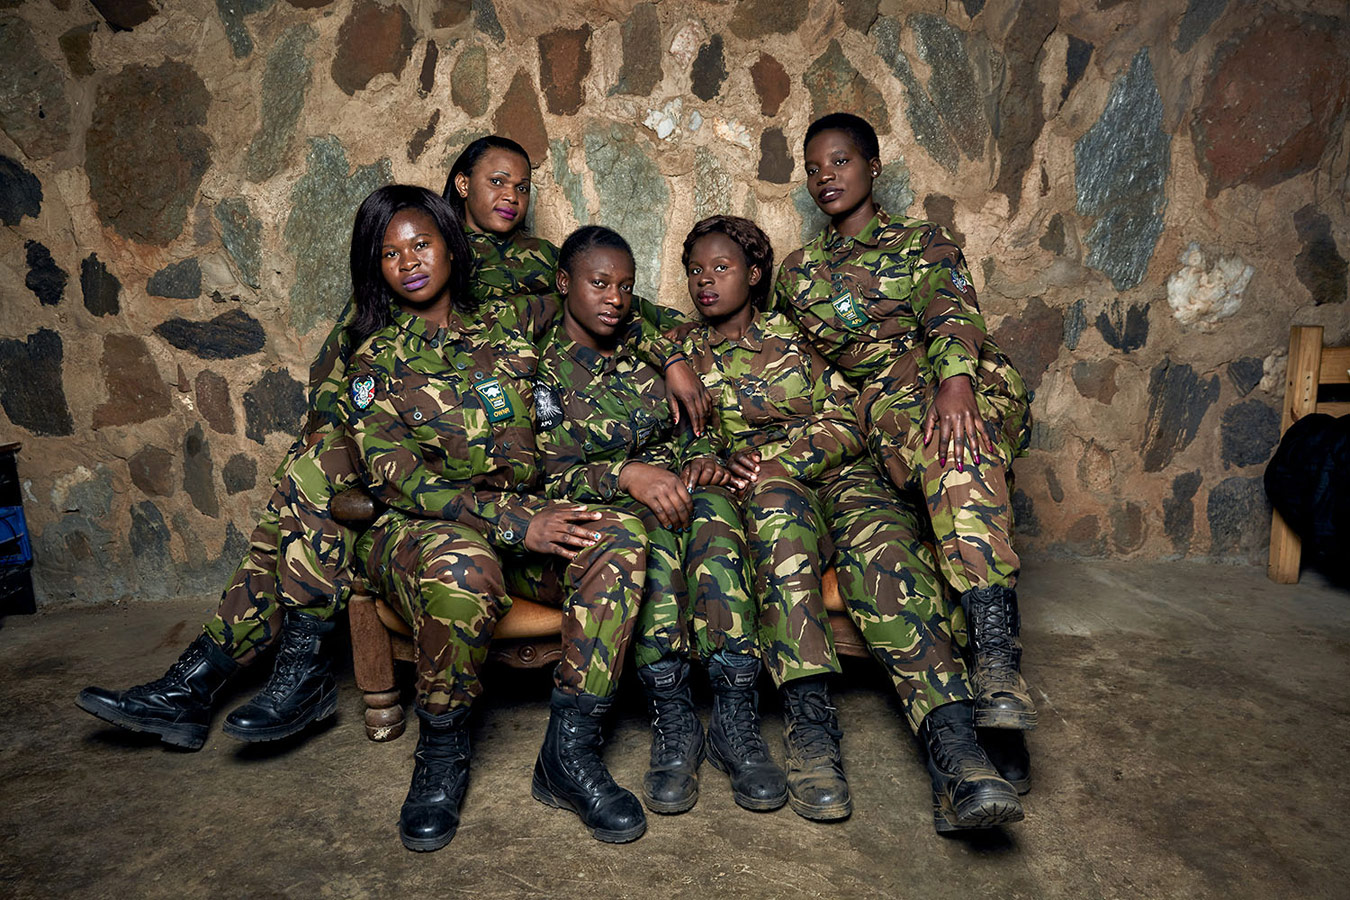 The Black Mambas Grietjie Team. Balule Nature Reserve, South Africa, 2017, © Julia Gunther, Netherlands, Kuala Lumpur International Photoawards - KLPA